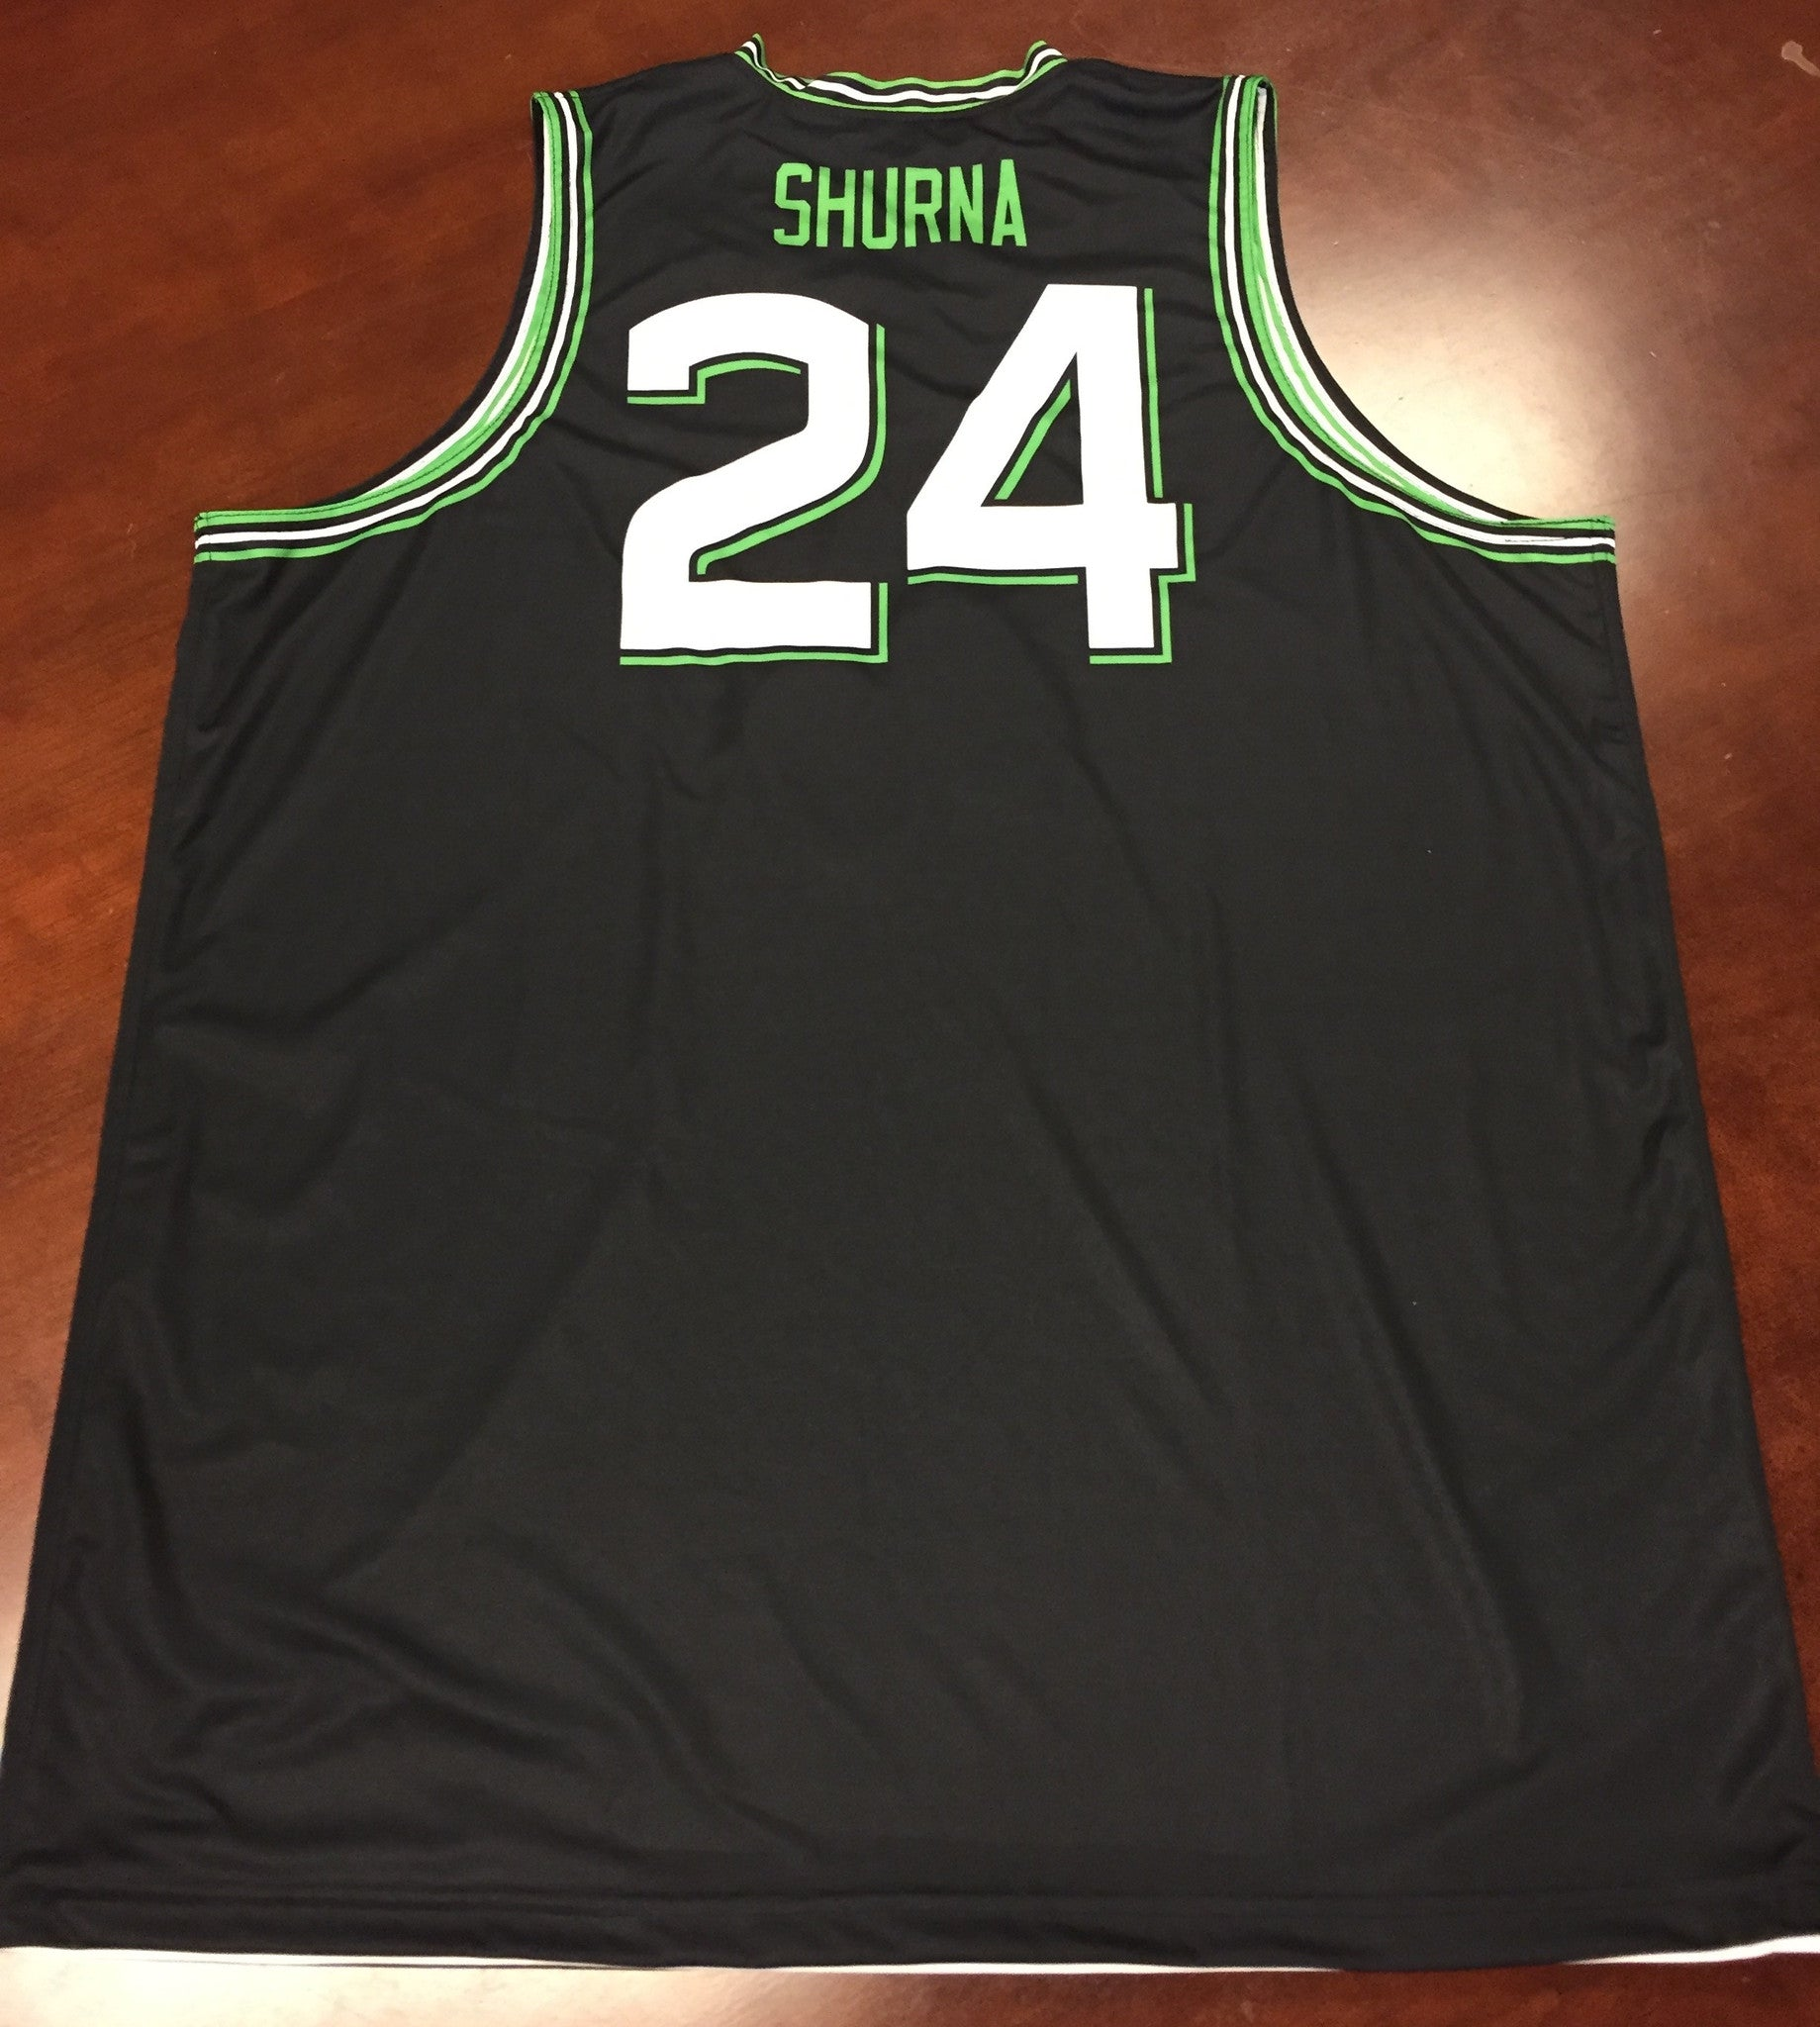 120 Sports - John Shurna 2016 Official Team Jersey (Size 2XL)